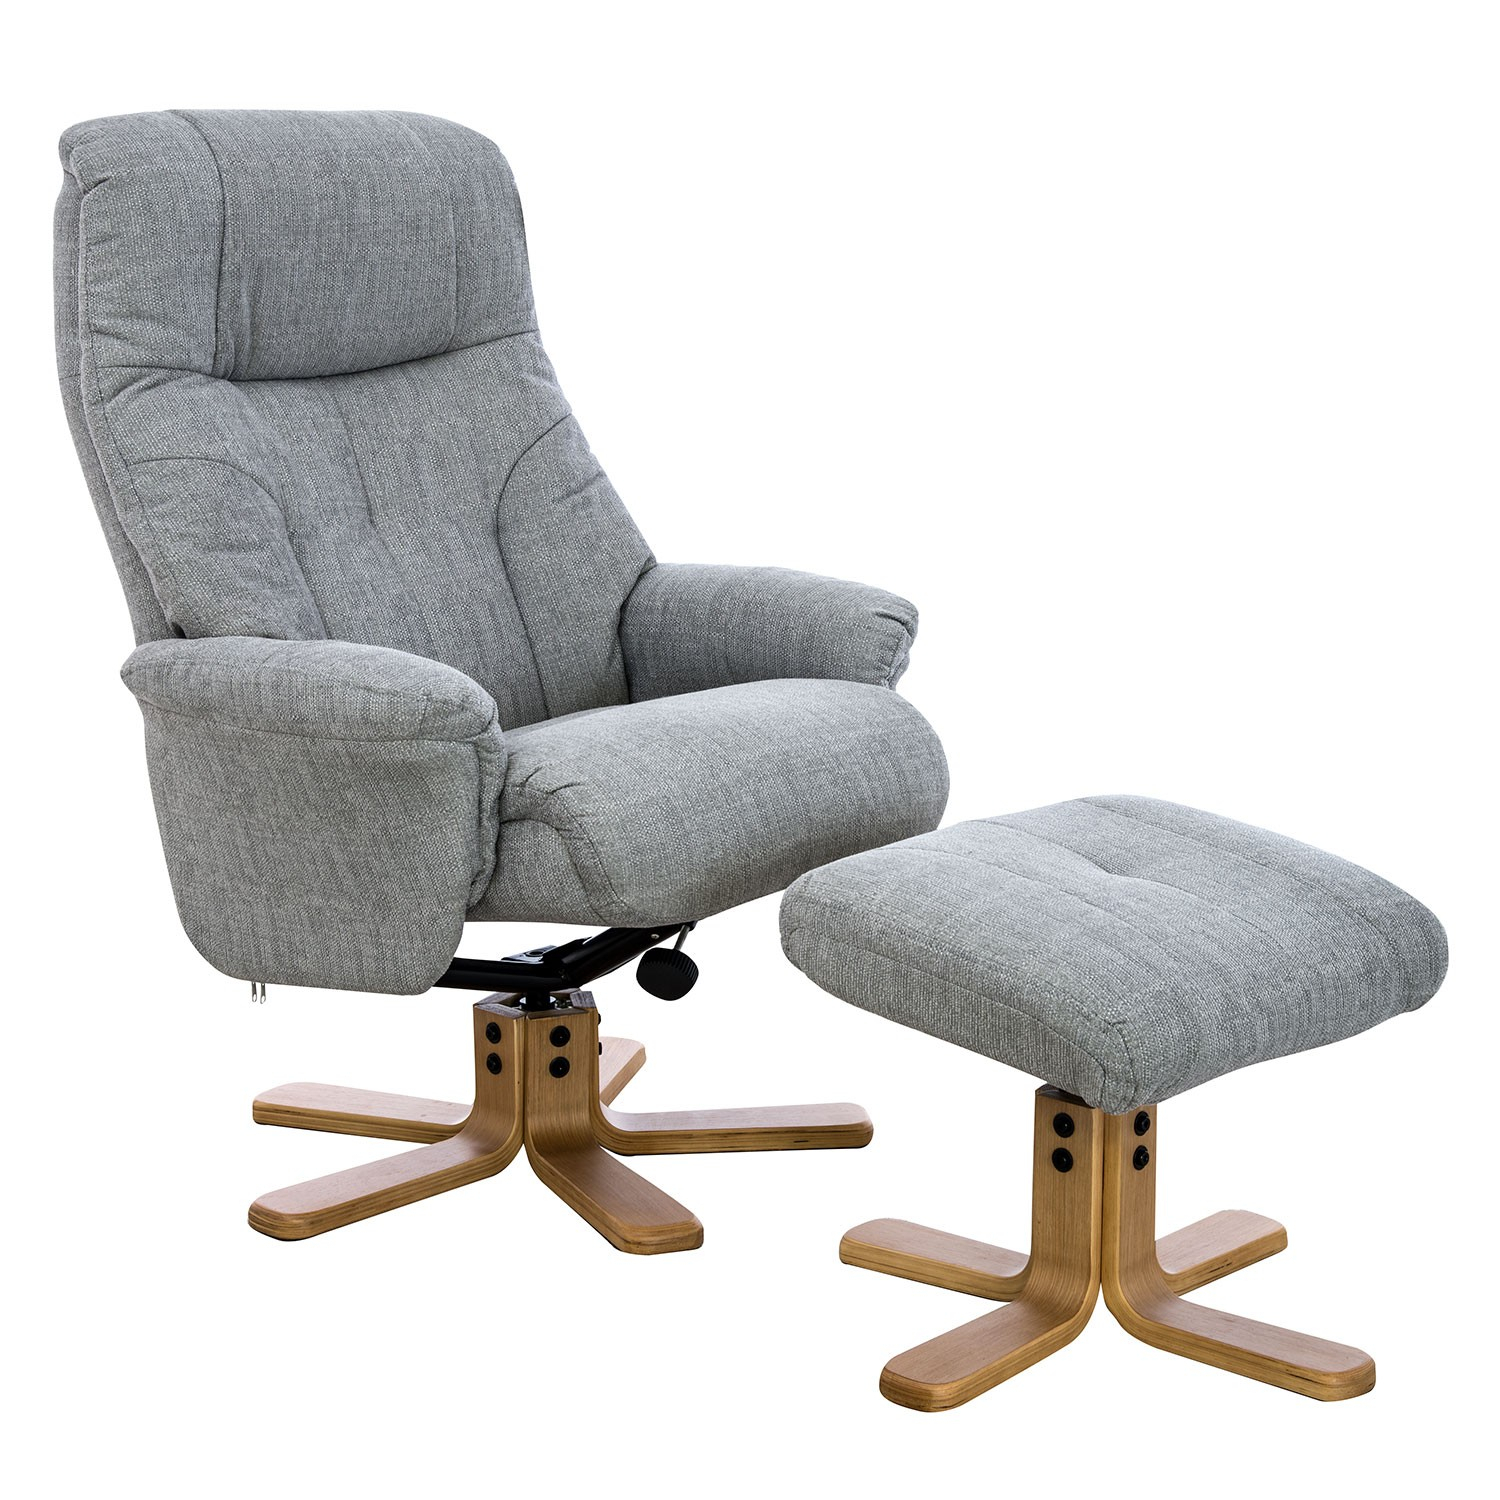 Casa Trento Swivel Recliner And Footstool | Leekes In Decker Ii Fabric Swivel Rocker Recliners (Image 3 of 20)